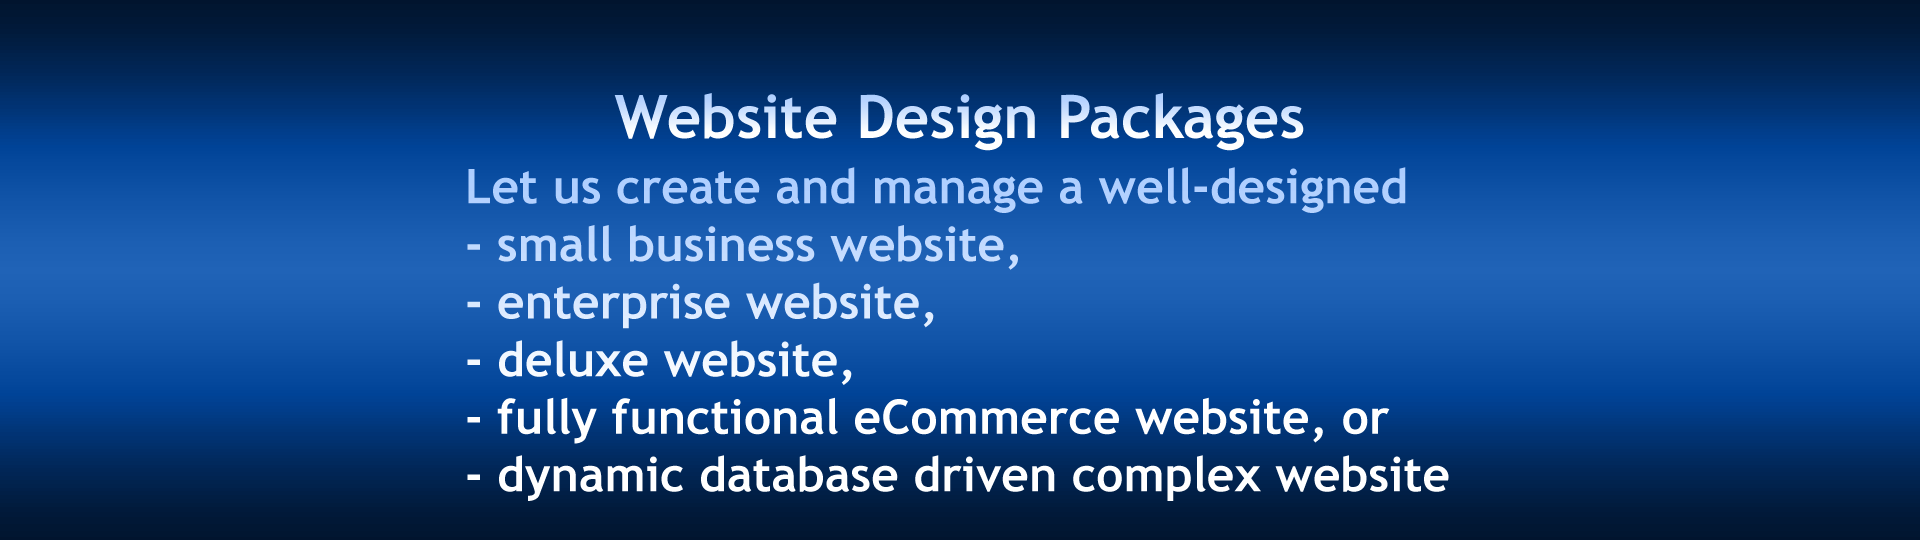 Slide 4 - Website Design Packages